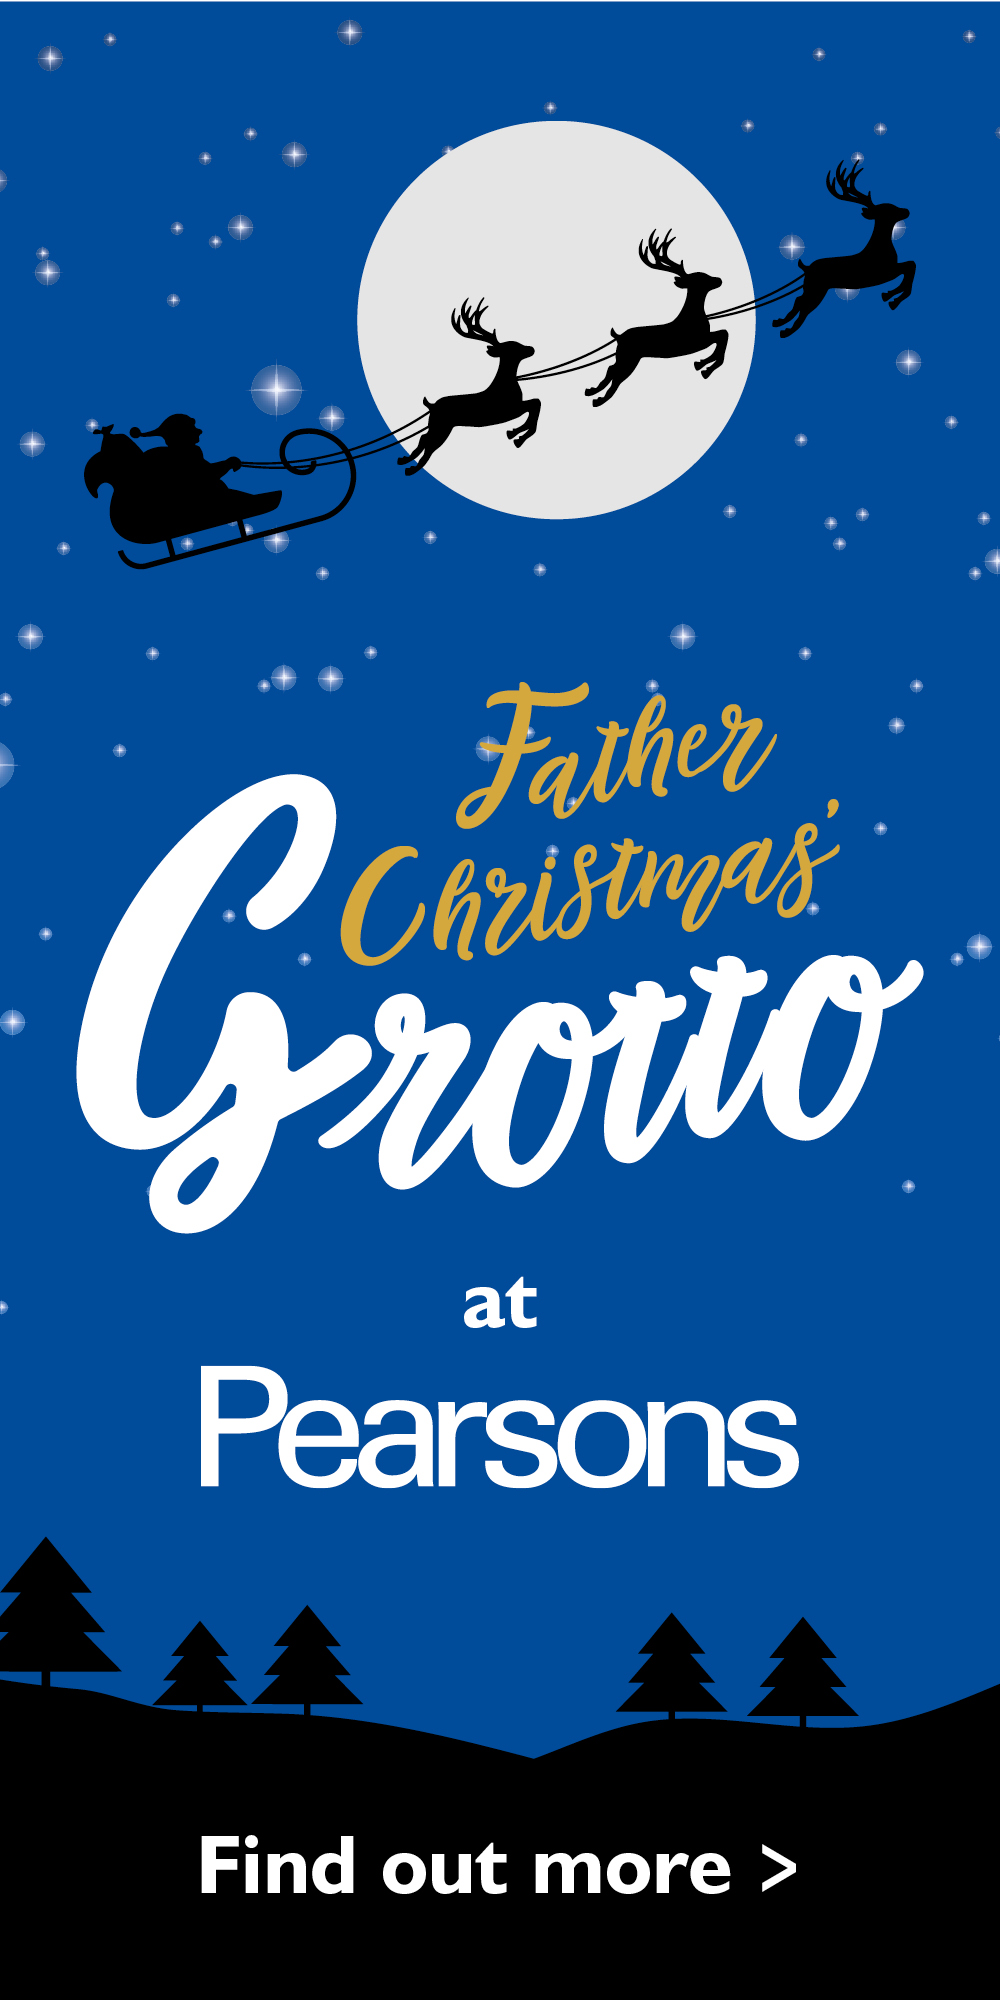 Father Christmas' Grotto at Pearsons